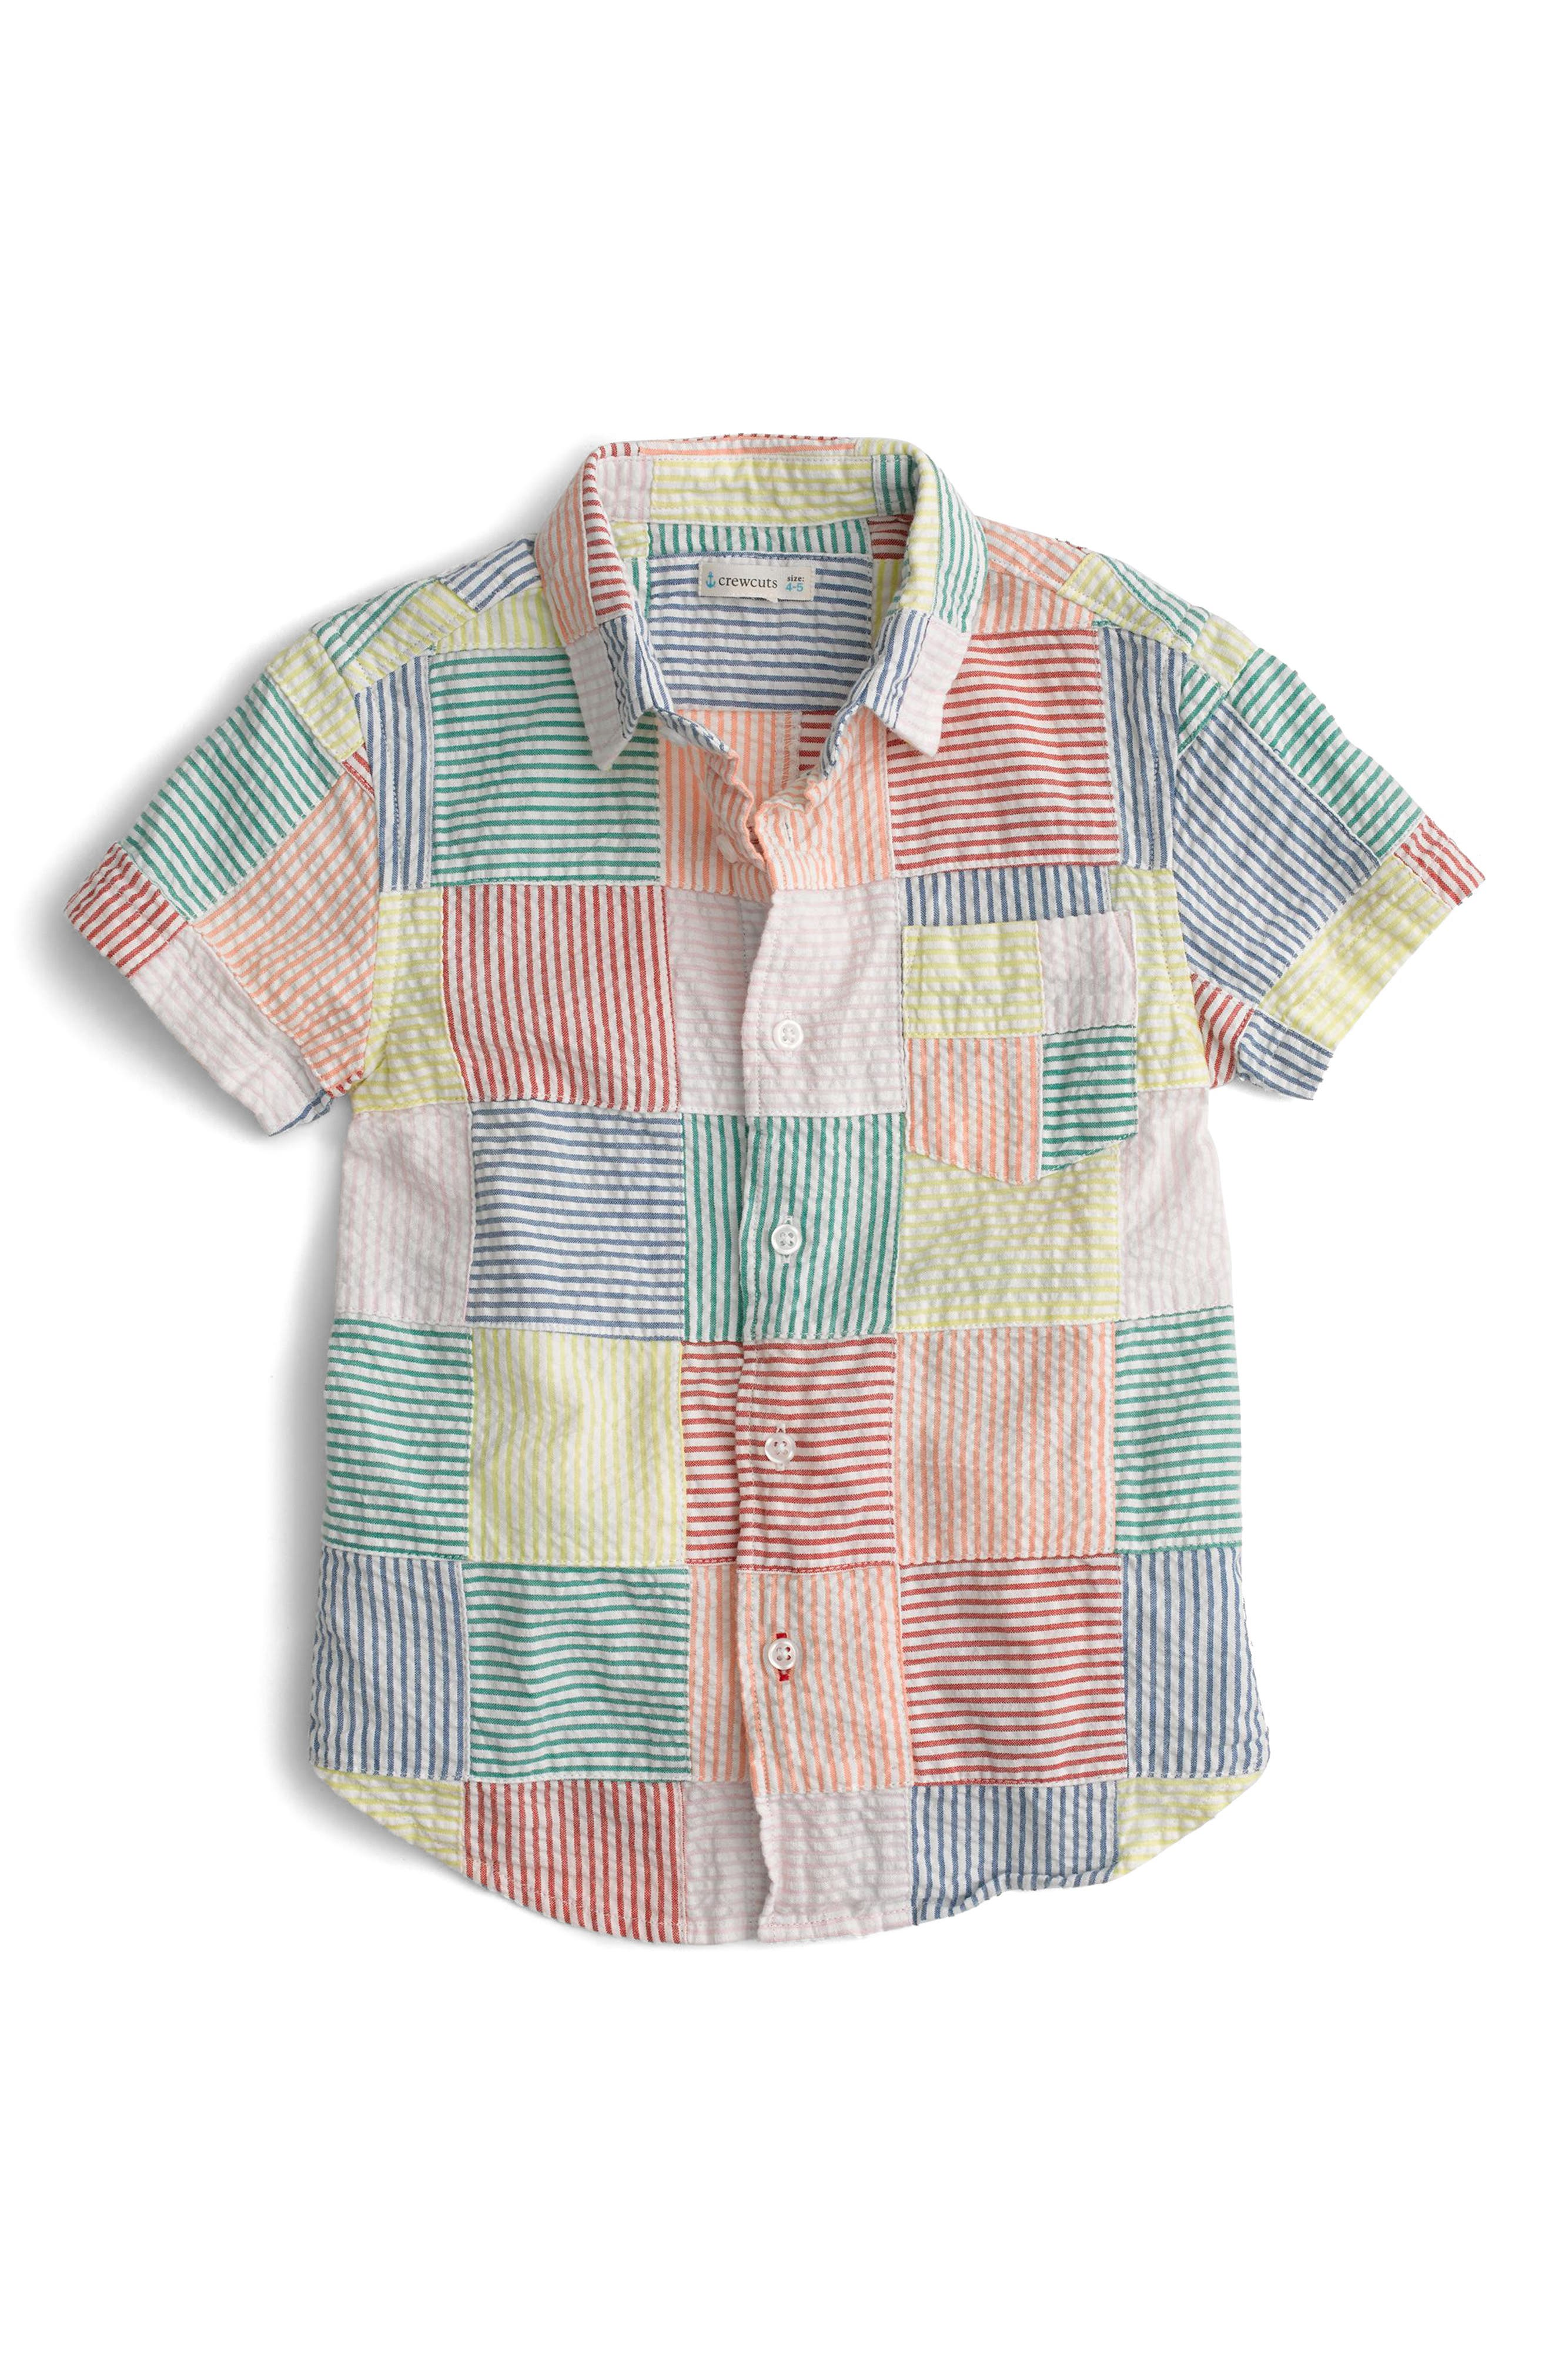 Patchwork Woven Shirt,                             Main thumbnail 1, color,                             Ivory Multi